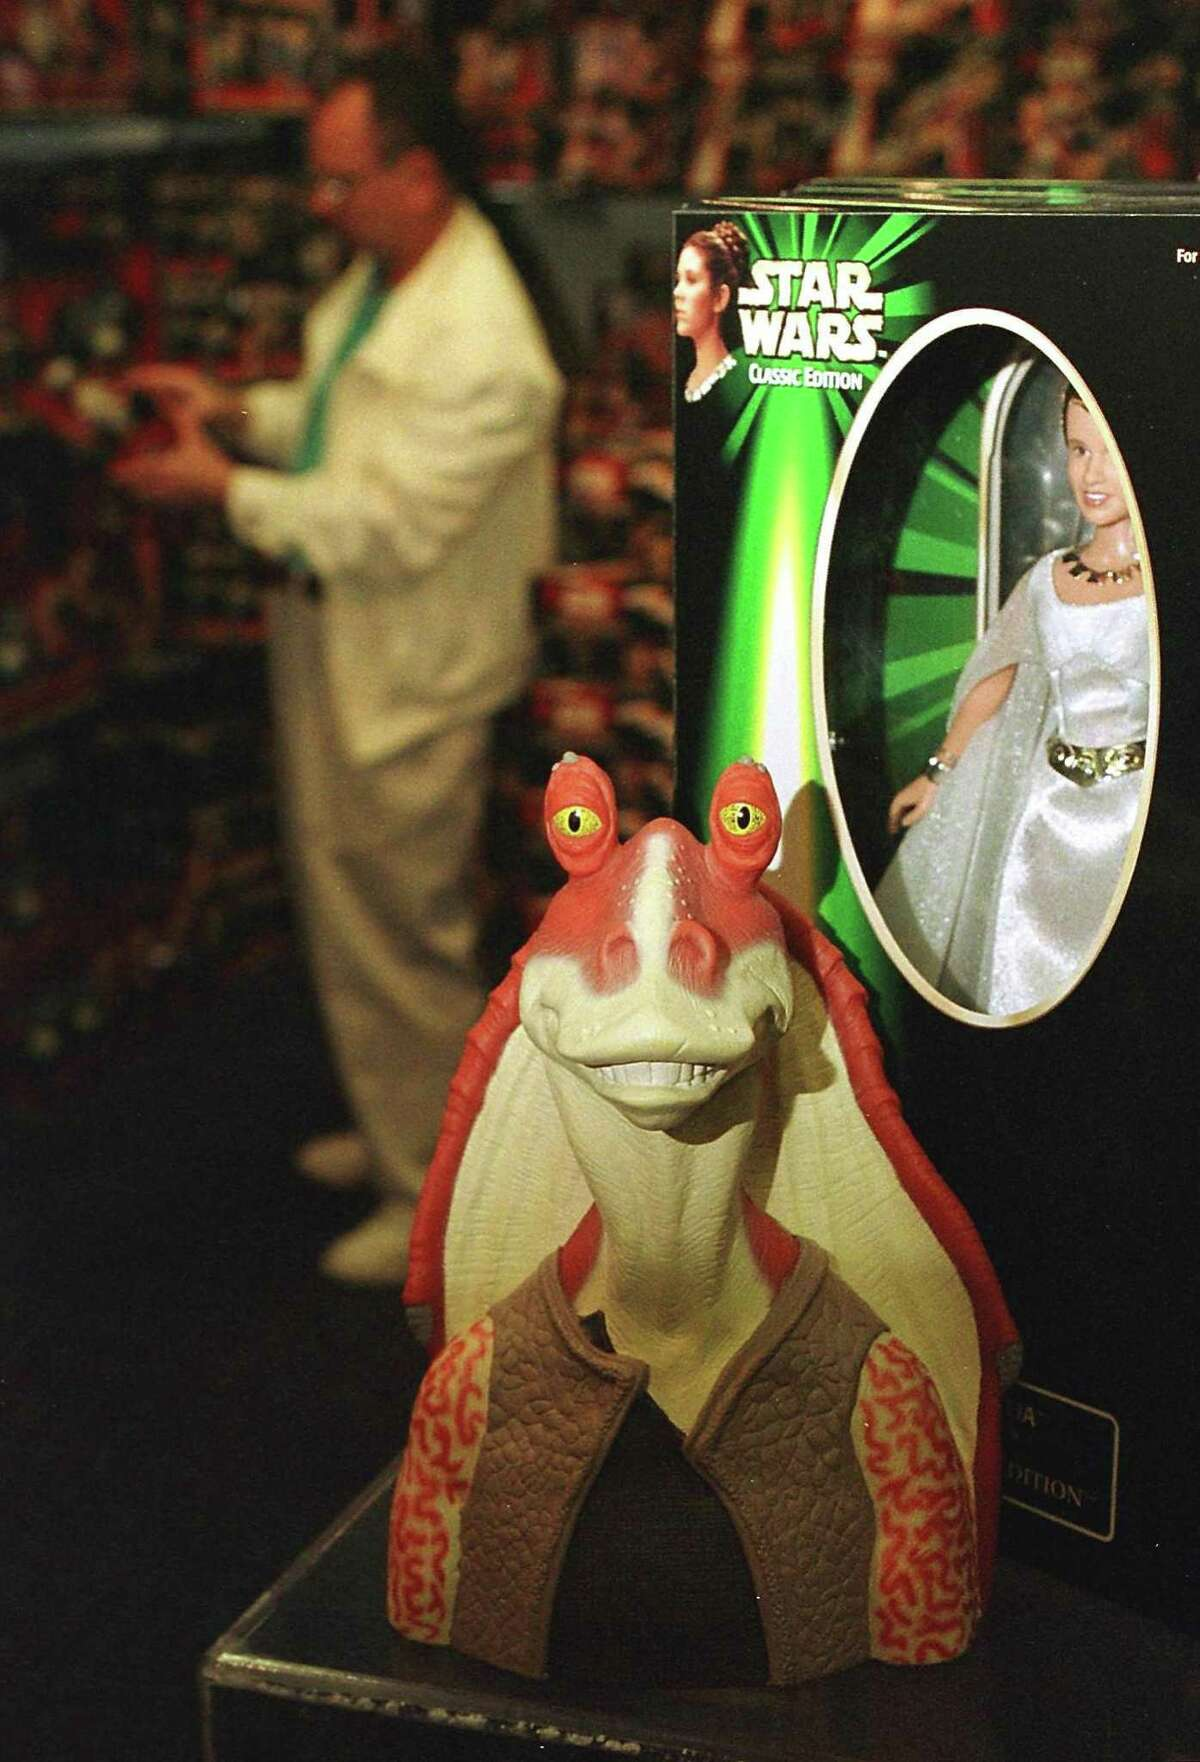 DO NOT bring back Jar Jar Binks or any other horribly annoying characters from the movies. I'm looking at you, Sy Snootles.